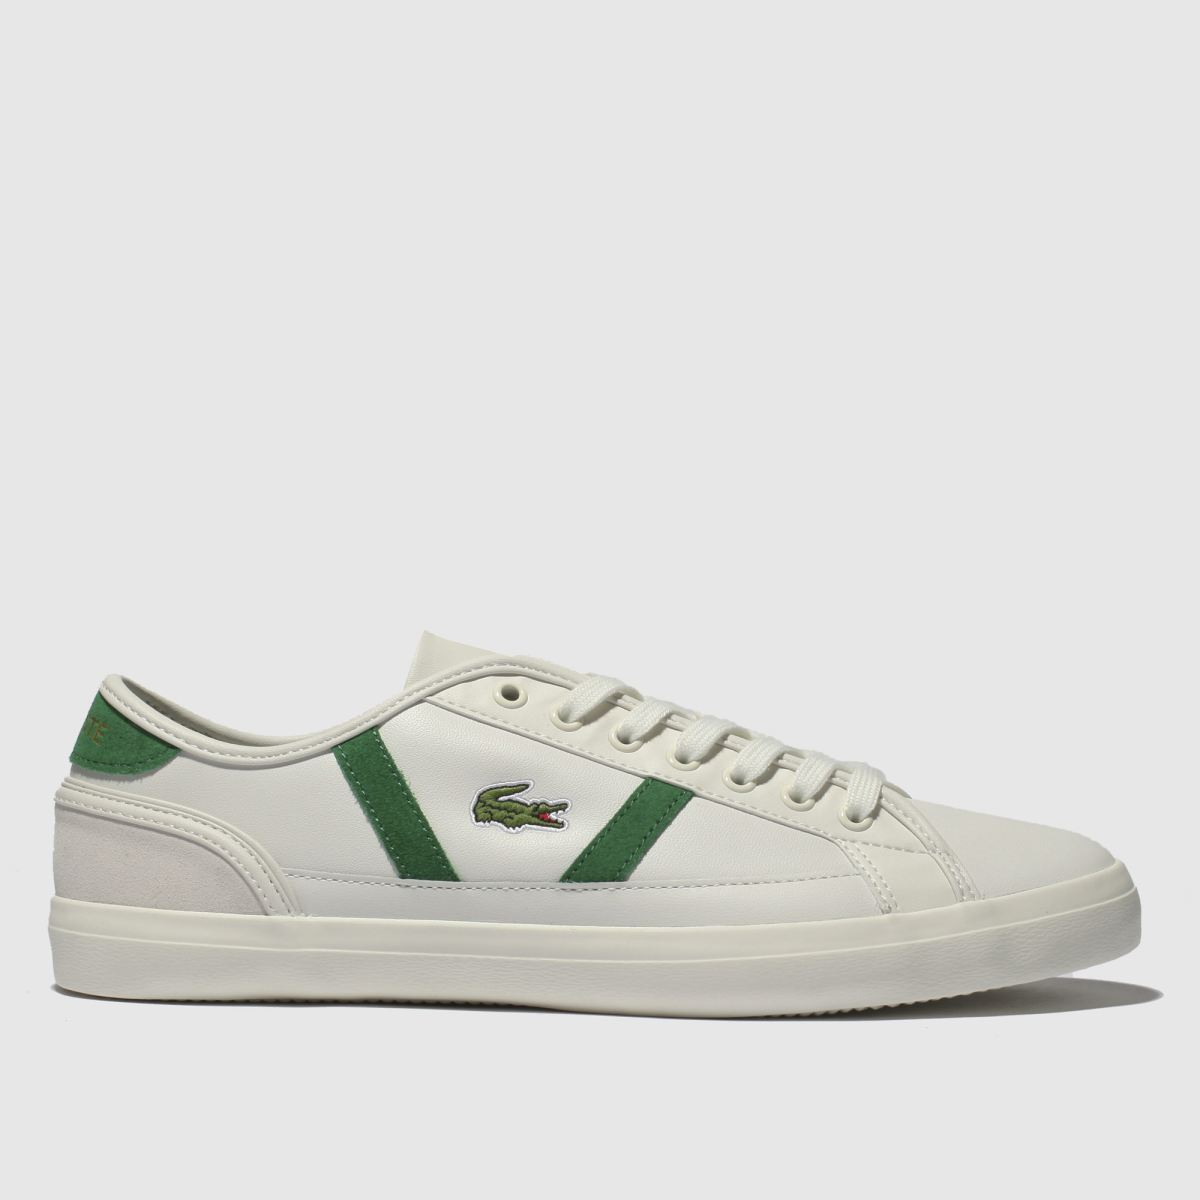 Lacoste White & Green Sideline Trainers